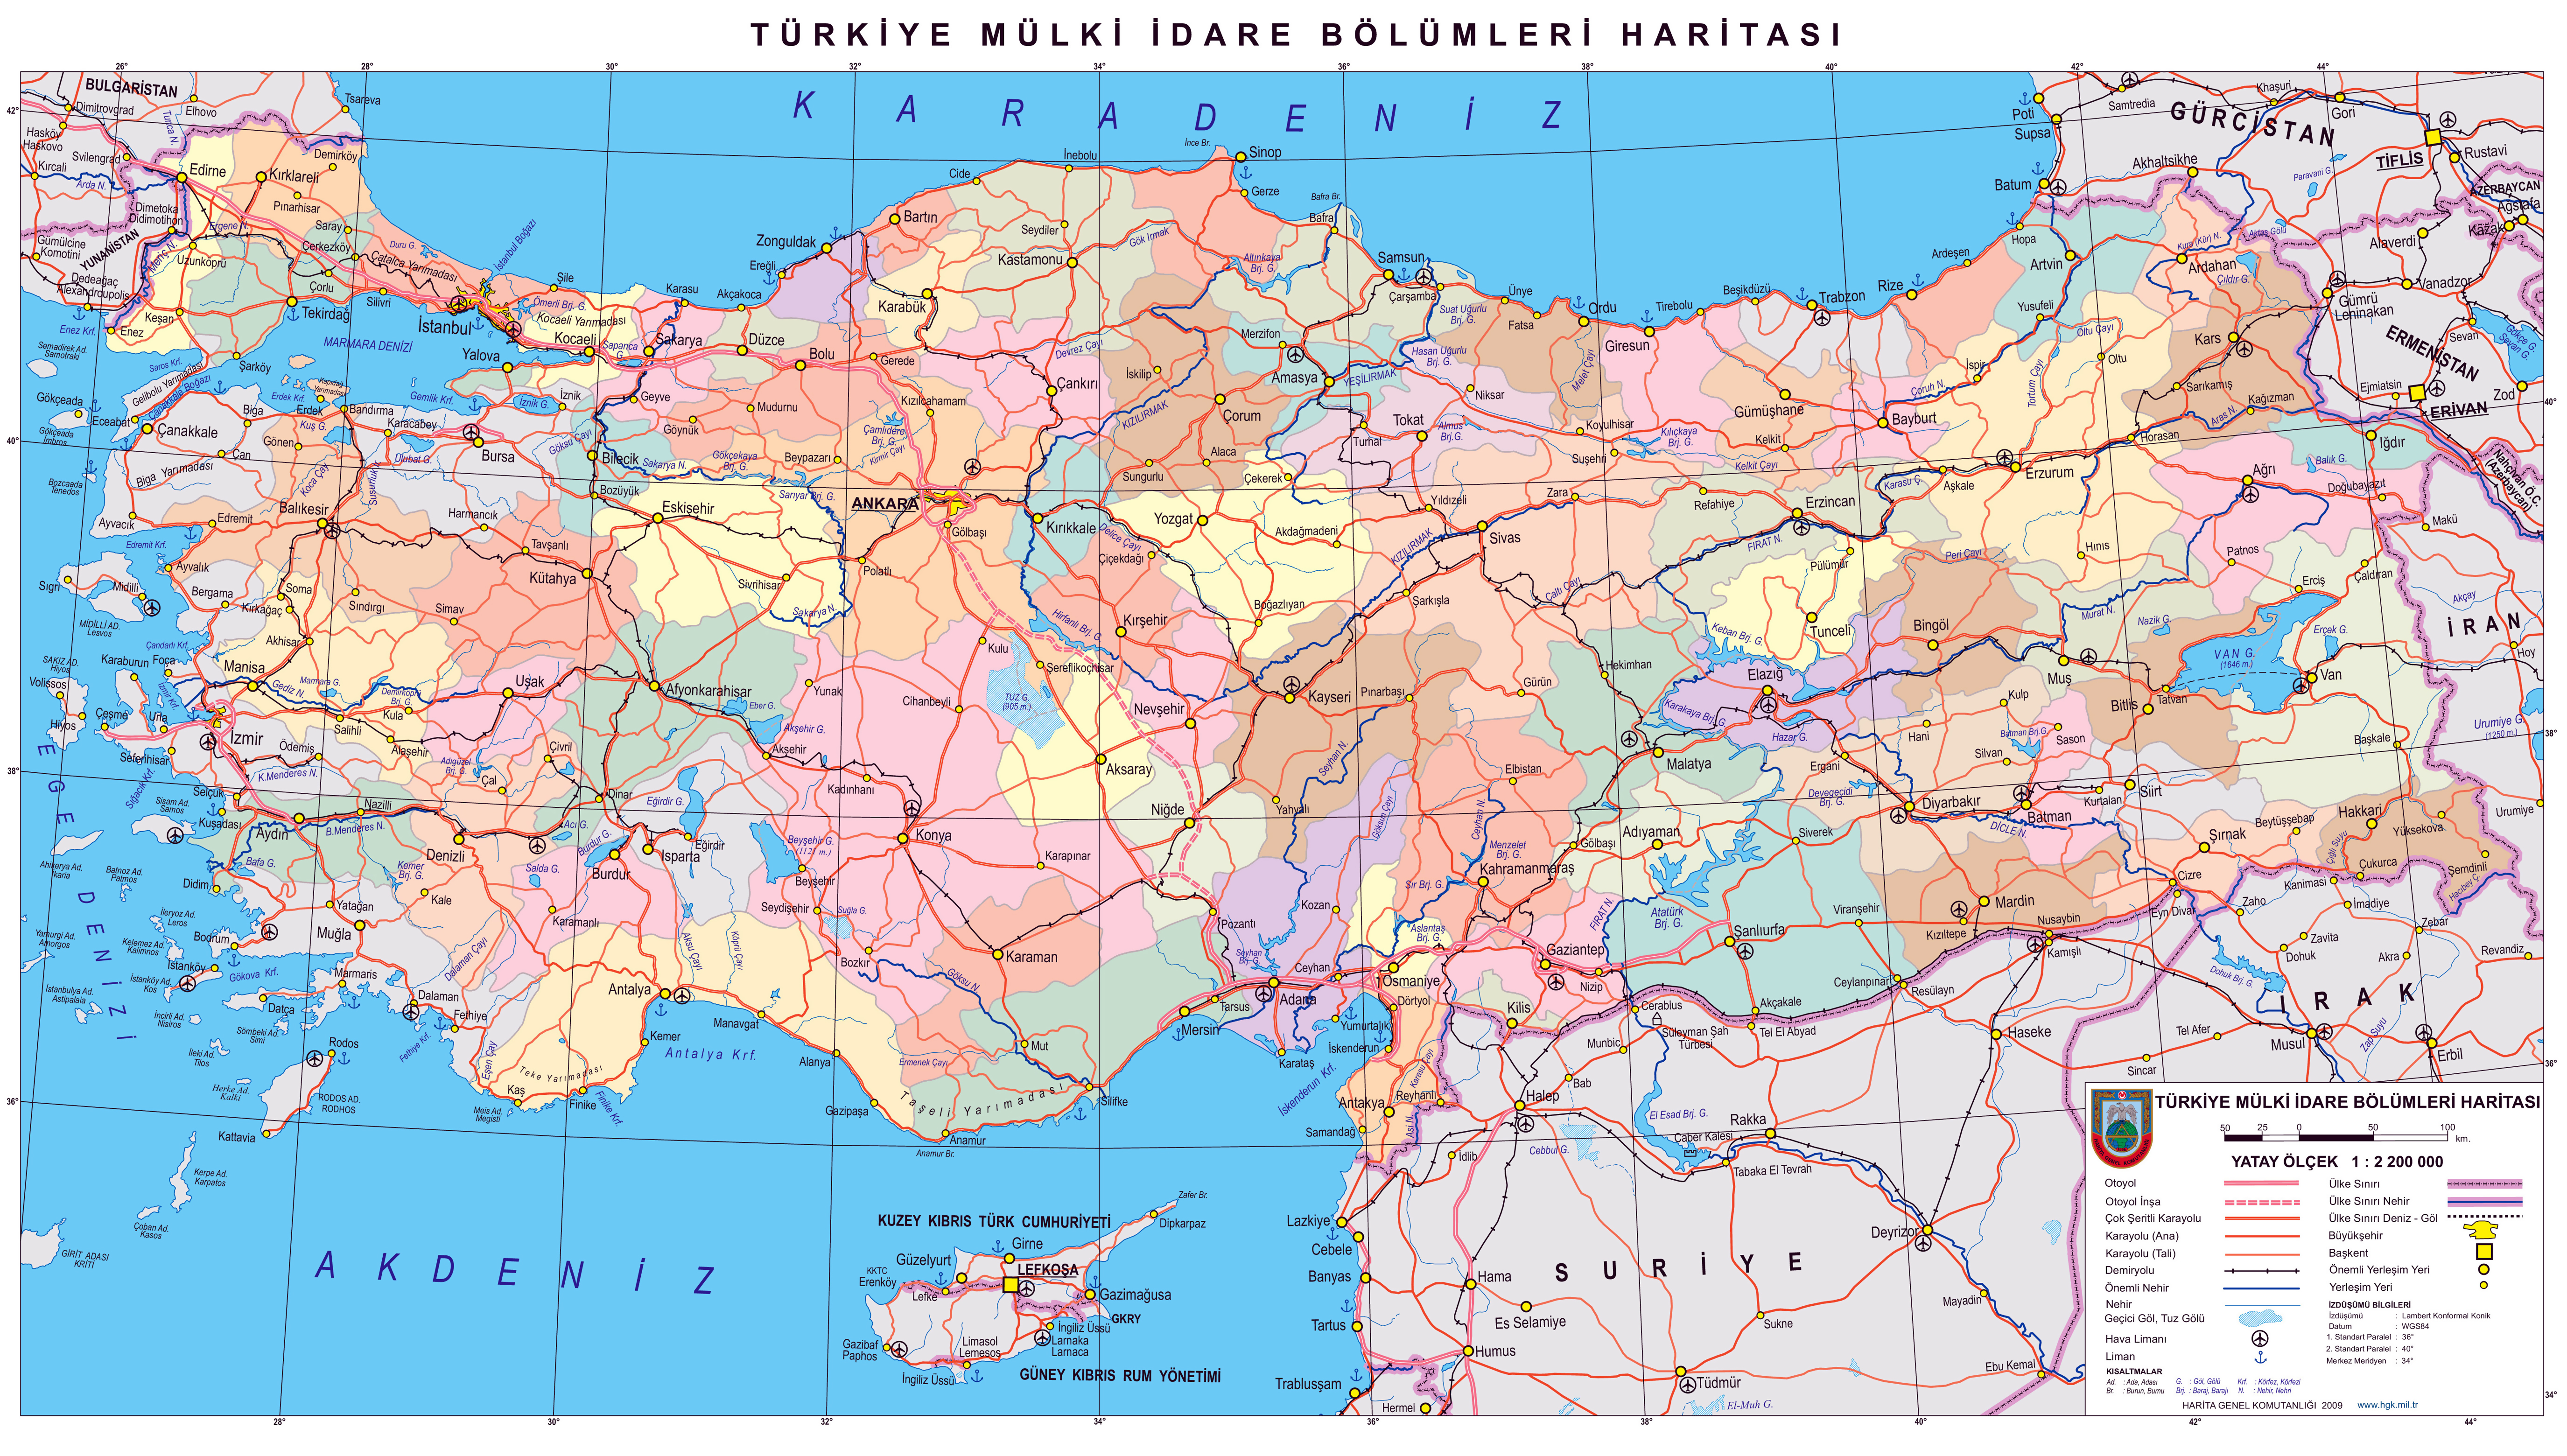 In high resolution detailed politica and administrative map of